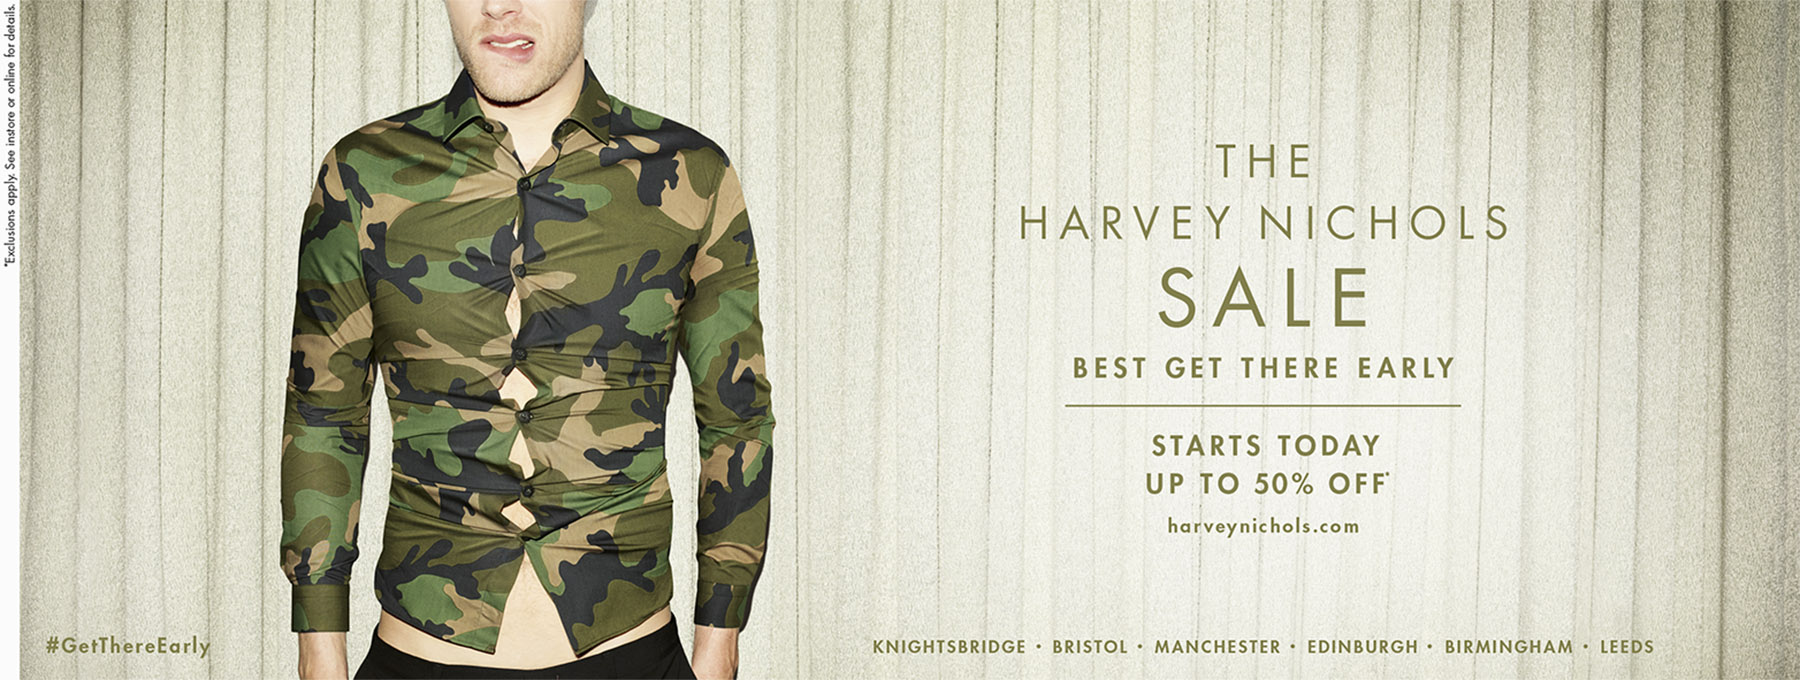 KH4037_HN_BEST_GET_THERE_EARLY_SHIRT_100X265_GENERIC_MASTER